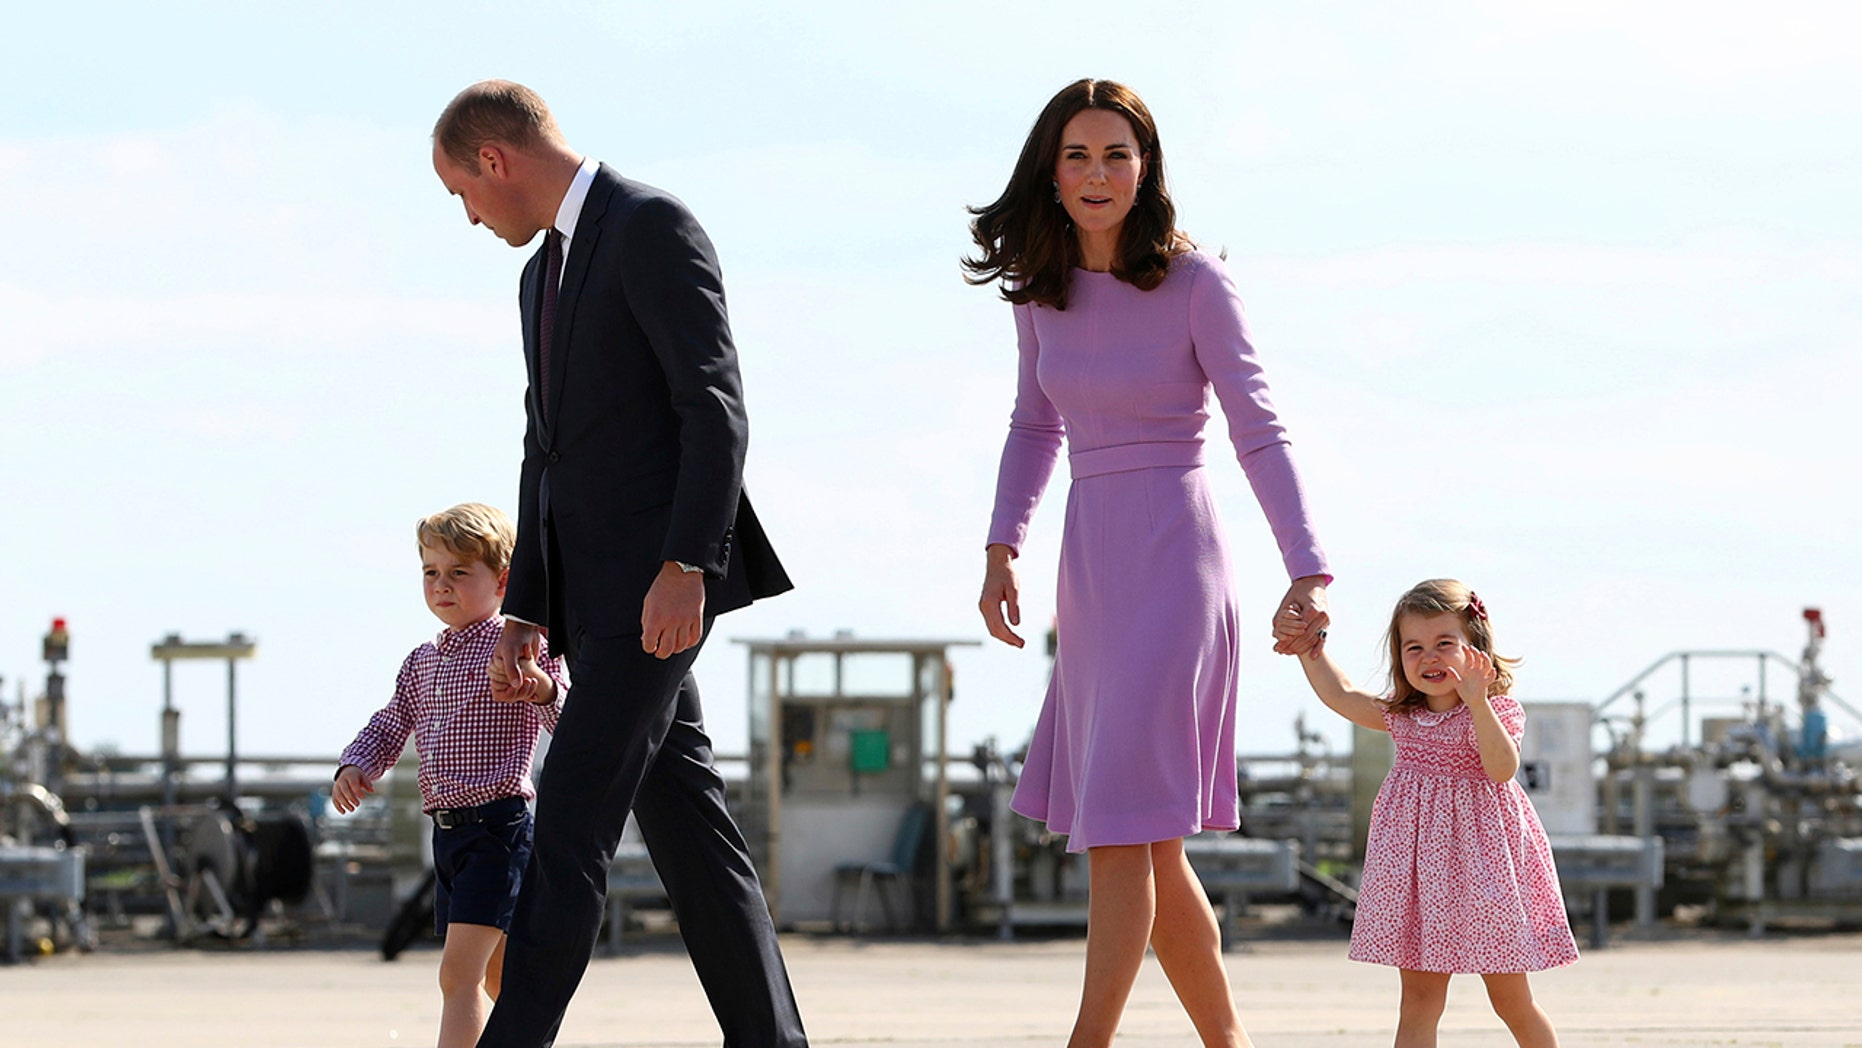 In this Friday, July 21, 2017 file photo Britain's Prince William, second left, and his wife Kate, the Duchess of Cambridge, second right, and their children, Prince George, left, and Princess Charlotte, right are on their way to board a plane in Hamburg, Germany